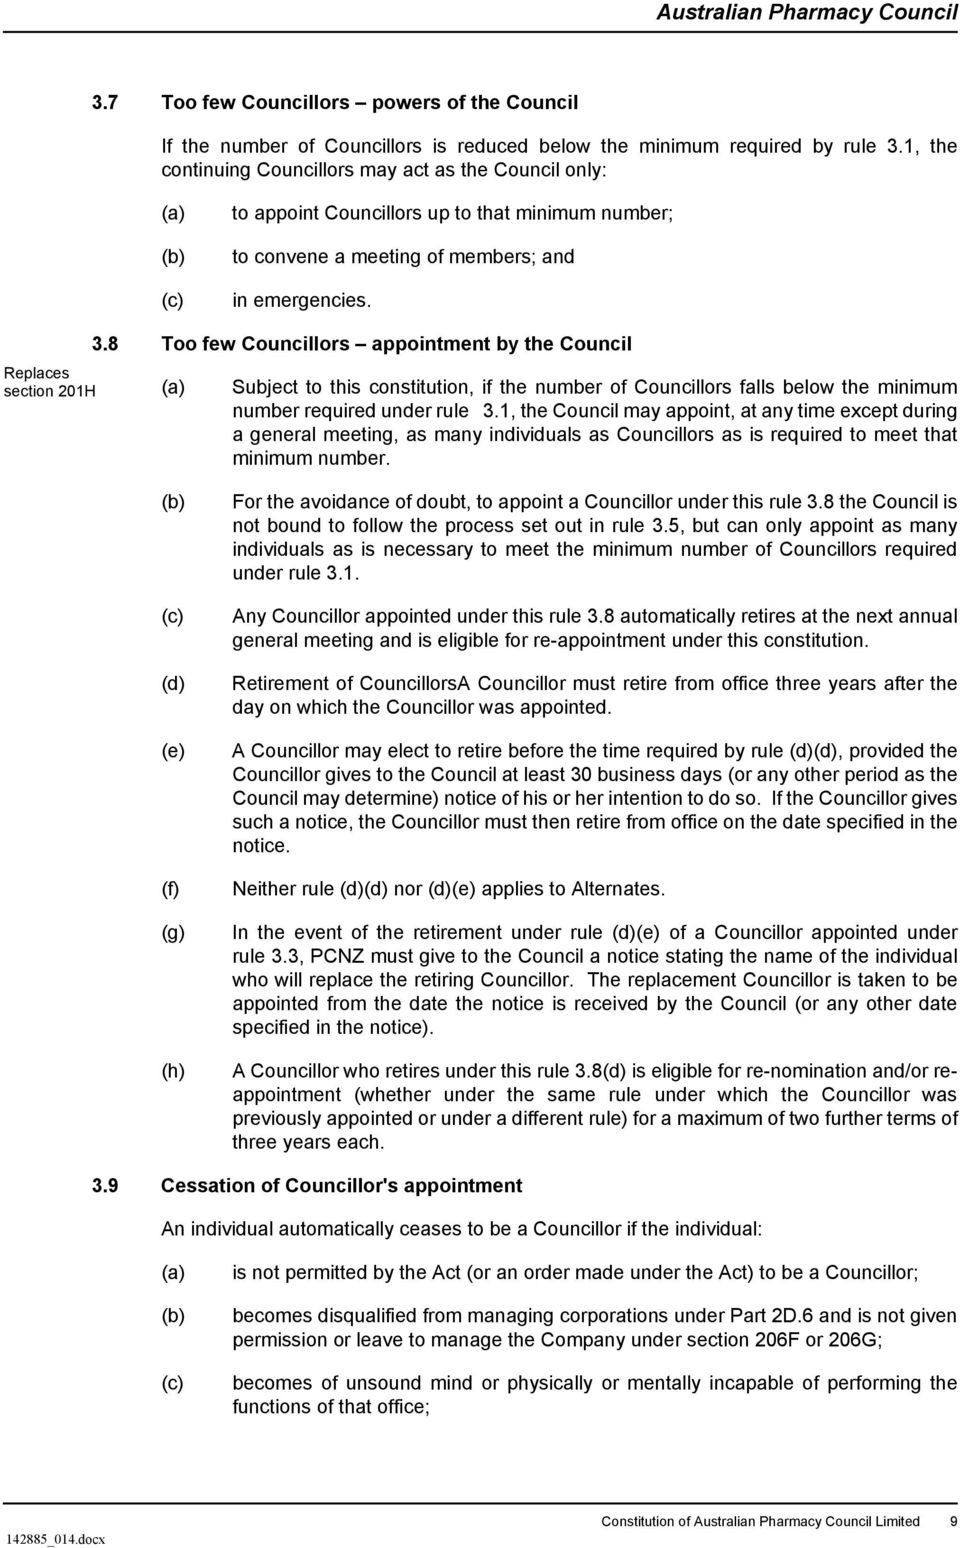 8 Too few Councillors appointment by the Council Subject to this constitution, if the number of Councillors falls below the minimum number required under rule 3.